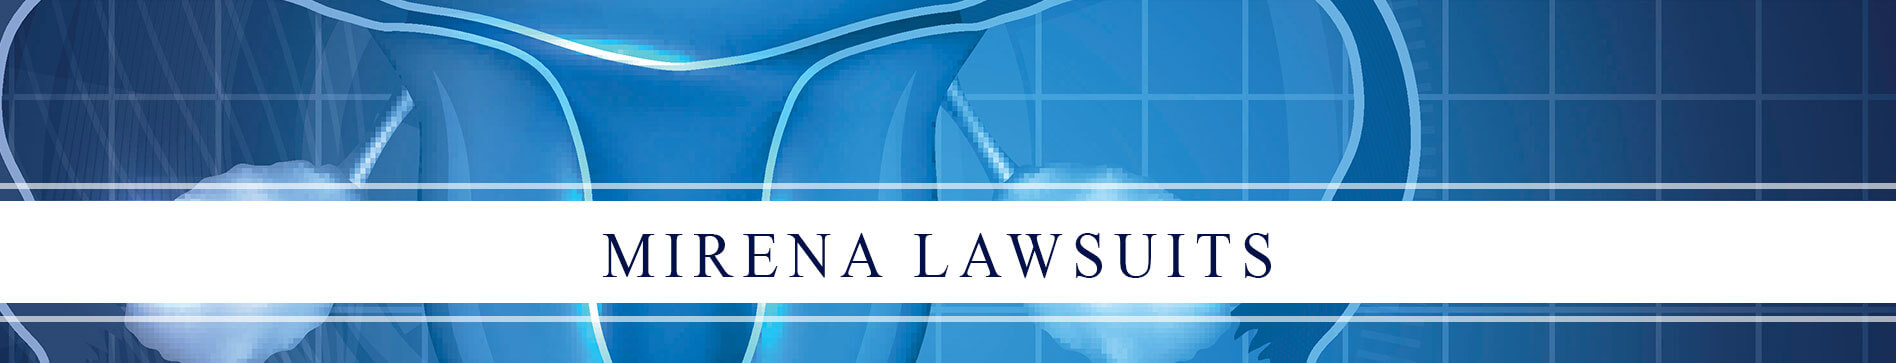 Texas Mirena Attorneys Serving Clients Nationwide